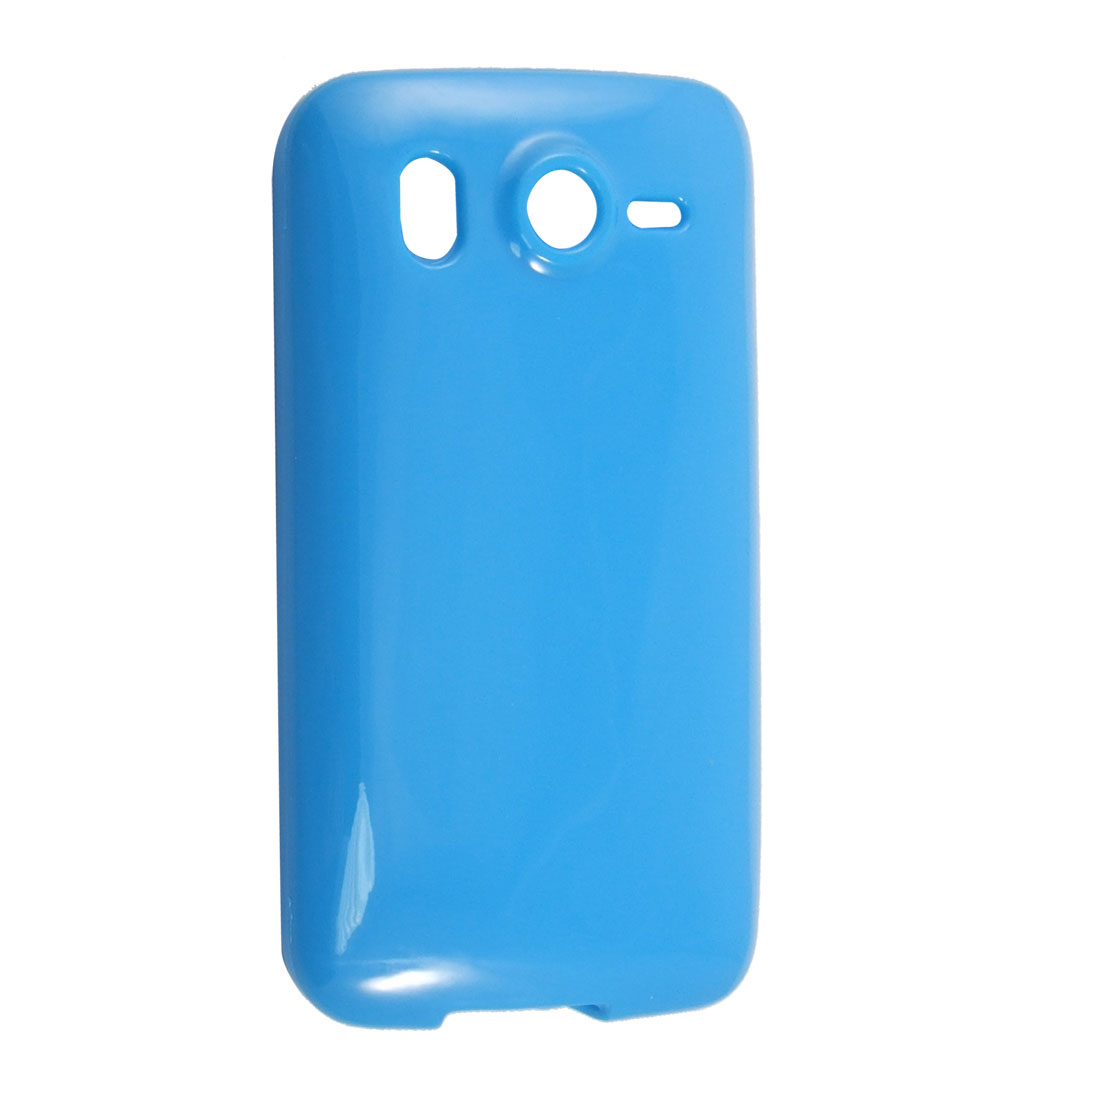 Blue Protective Soft Plastic Case Cover for HTC Desire HD G10